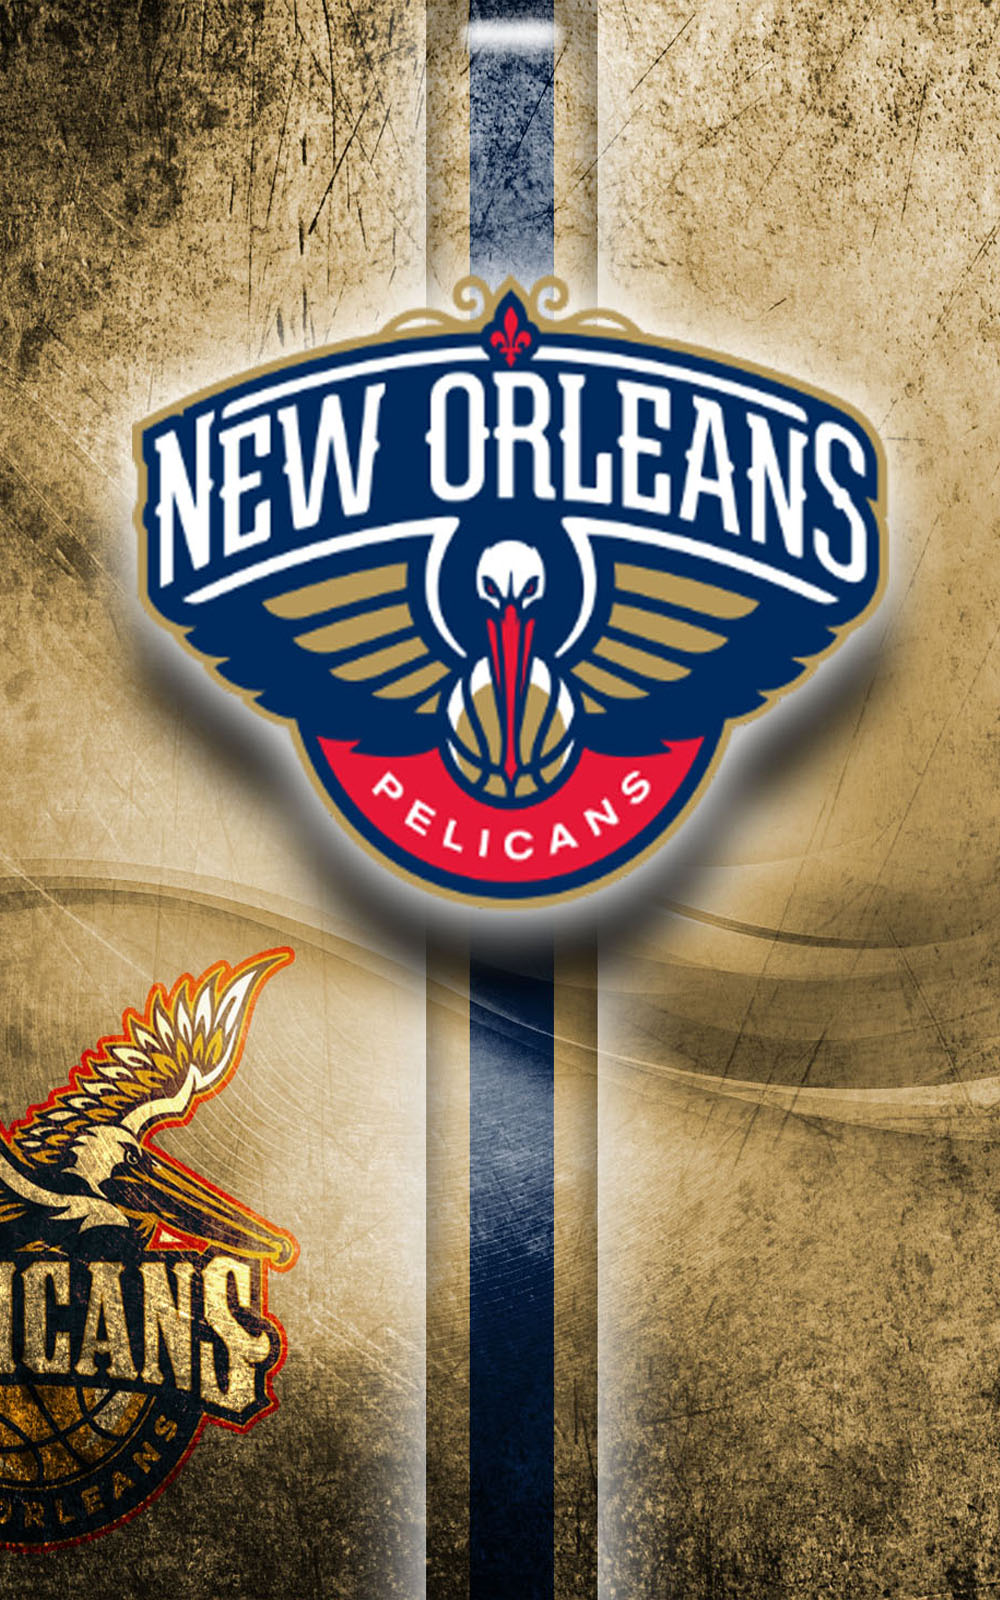 Basketball Quotes Wallpapers For Android New Orleans Pelicans Download Free Hd Mobile Wallpapers